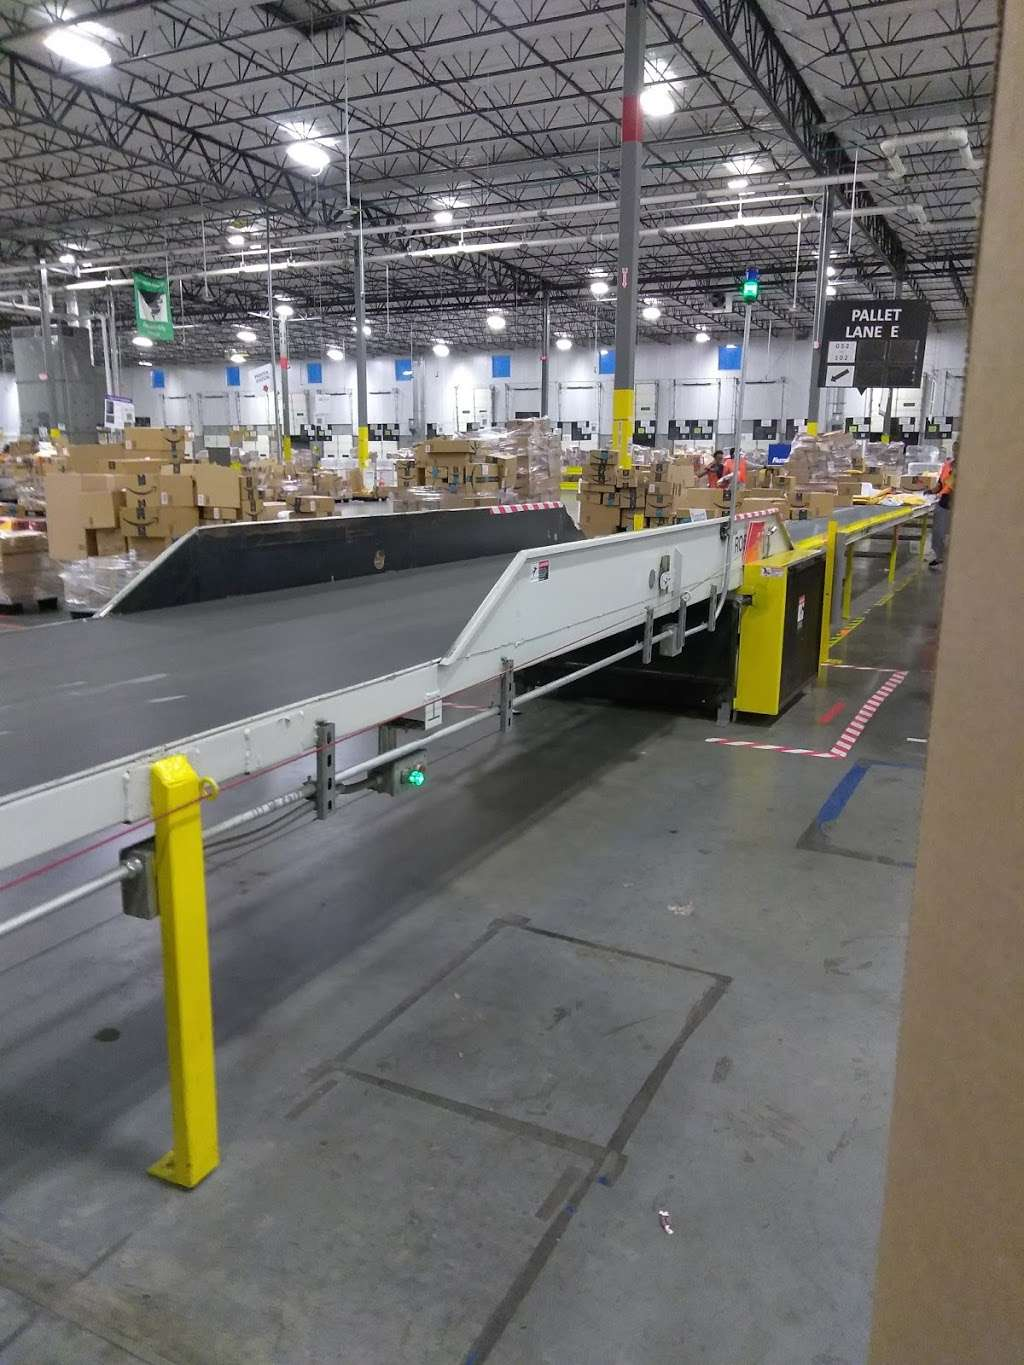 HOU1-Amazon Fulfillment Center - storage  | Photo 4 of 10 | Address: 8120 Humble Westfield Rd, Humble, TX 77338, USA | Phone: (877) 243-2915